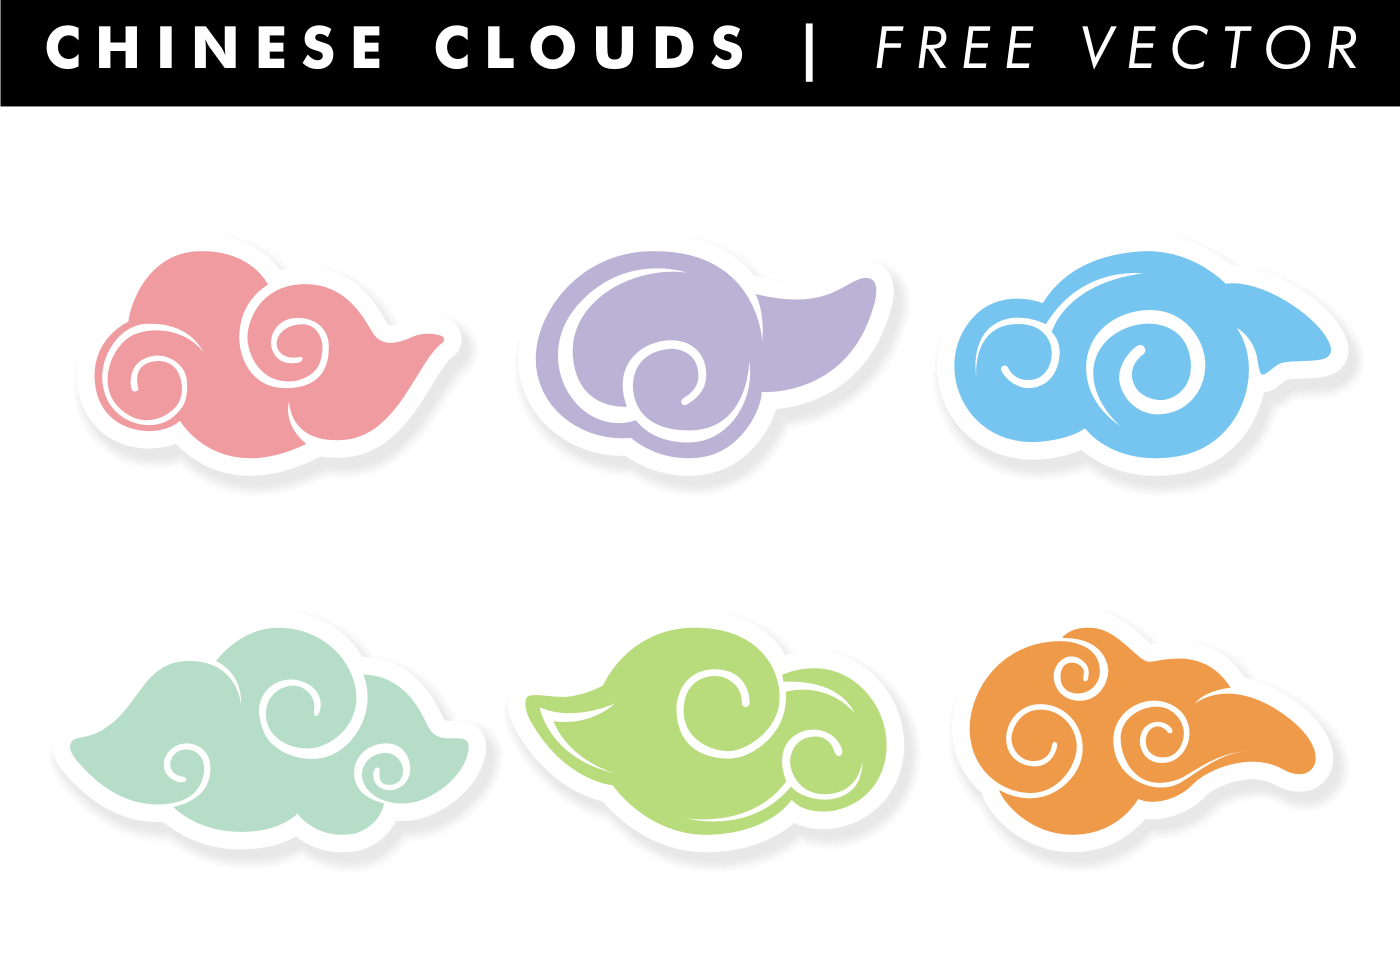 Chinese Clouds Free Vector Download Free Vector Art